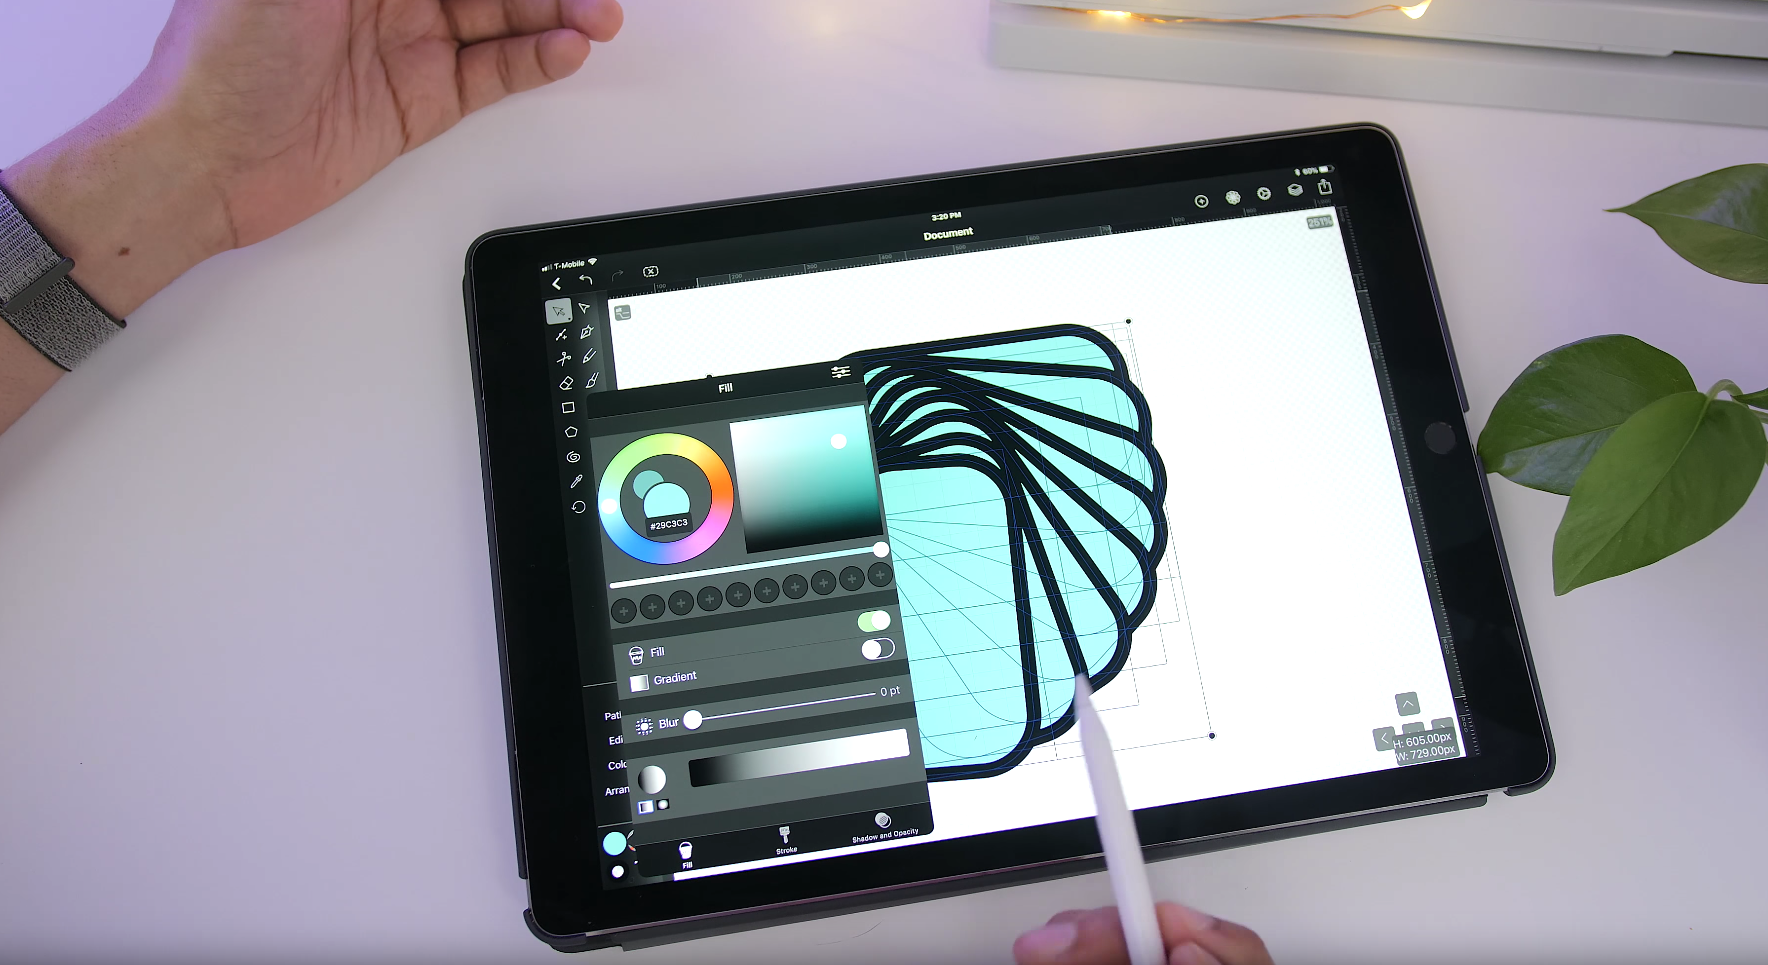 Vectornator Pro The Powerful Vector Graphic Design Software For Ipad Iphone Is Now Free 9to5mac